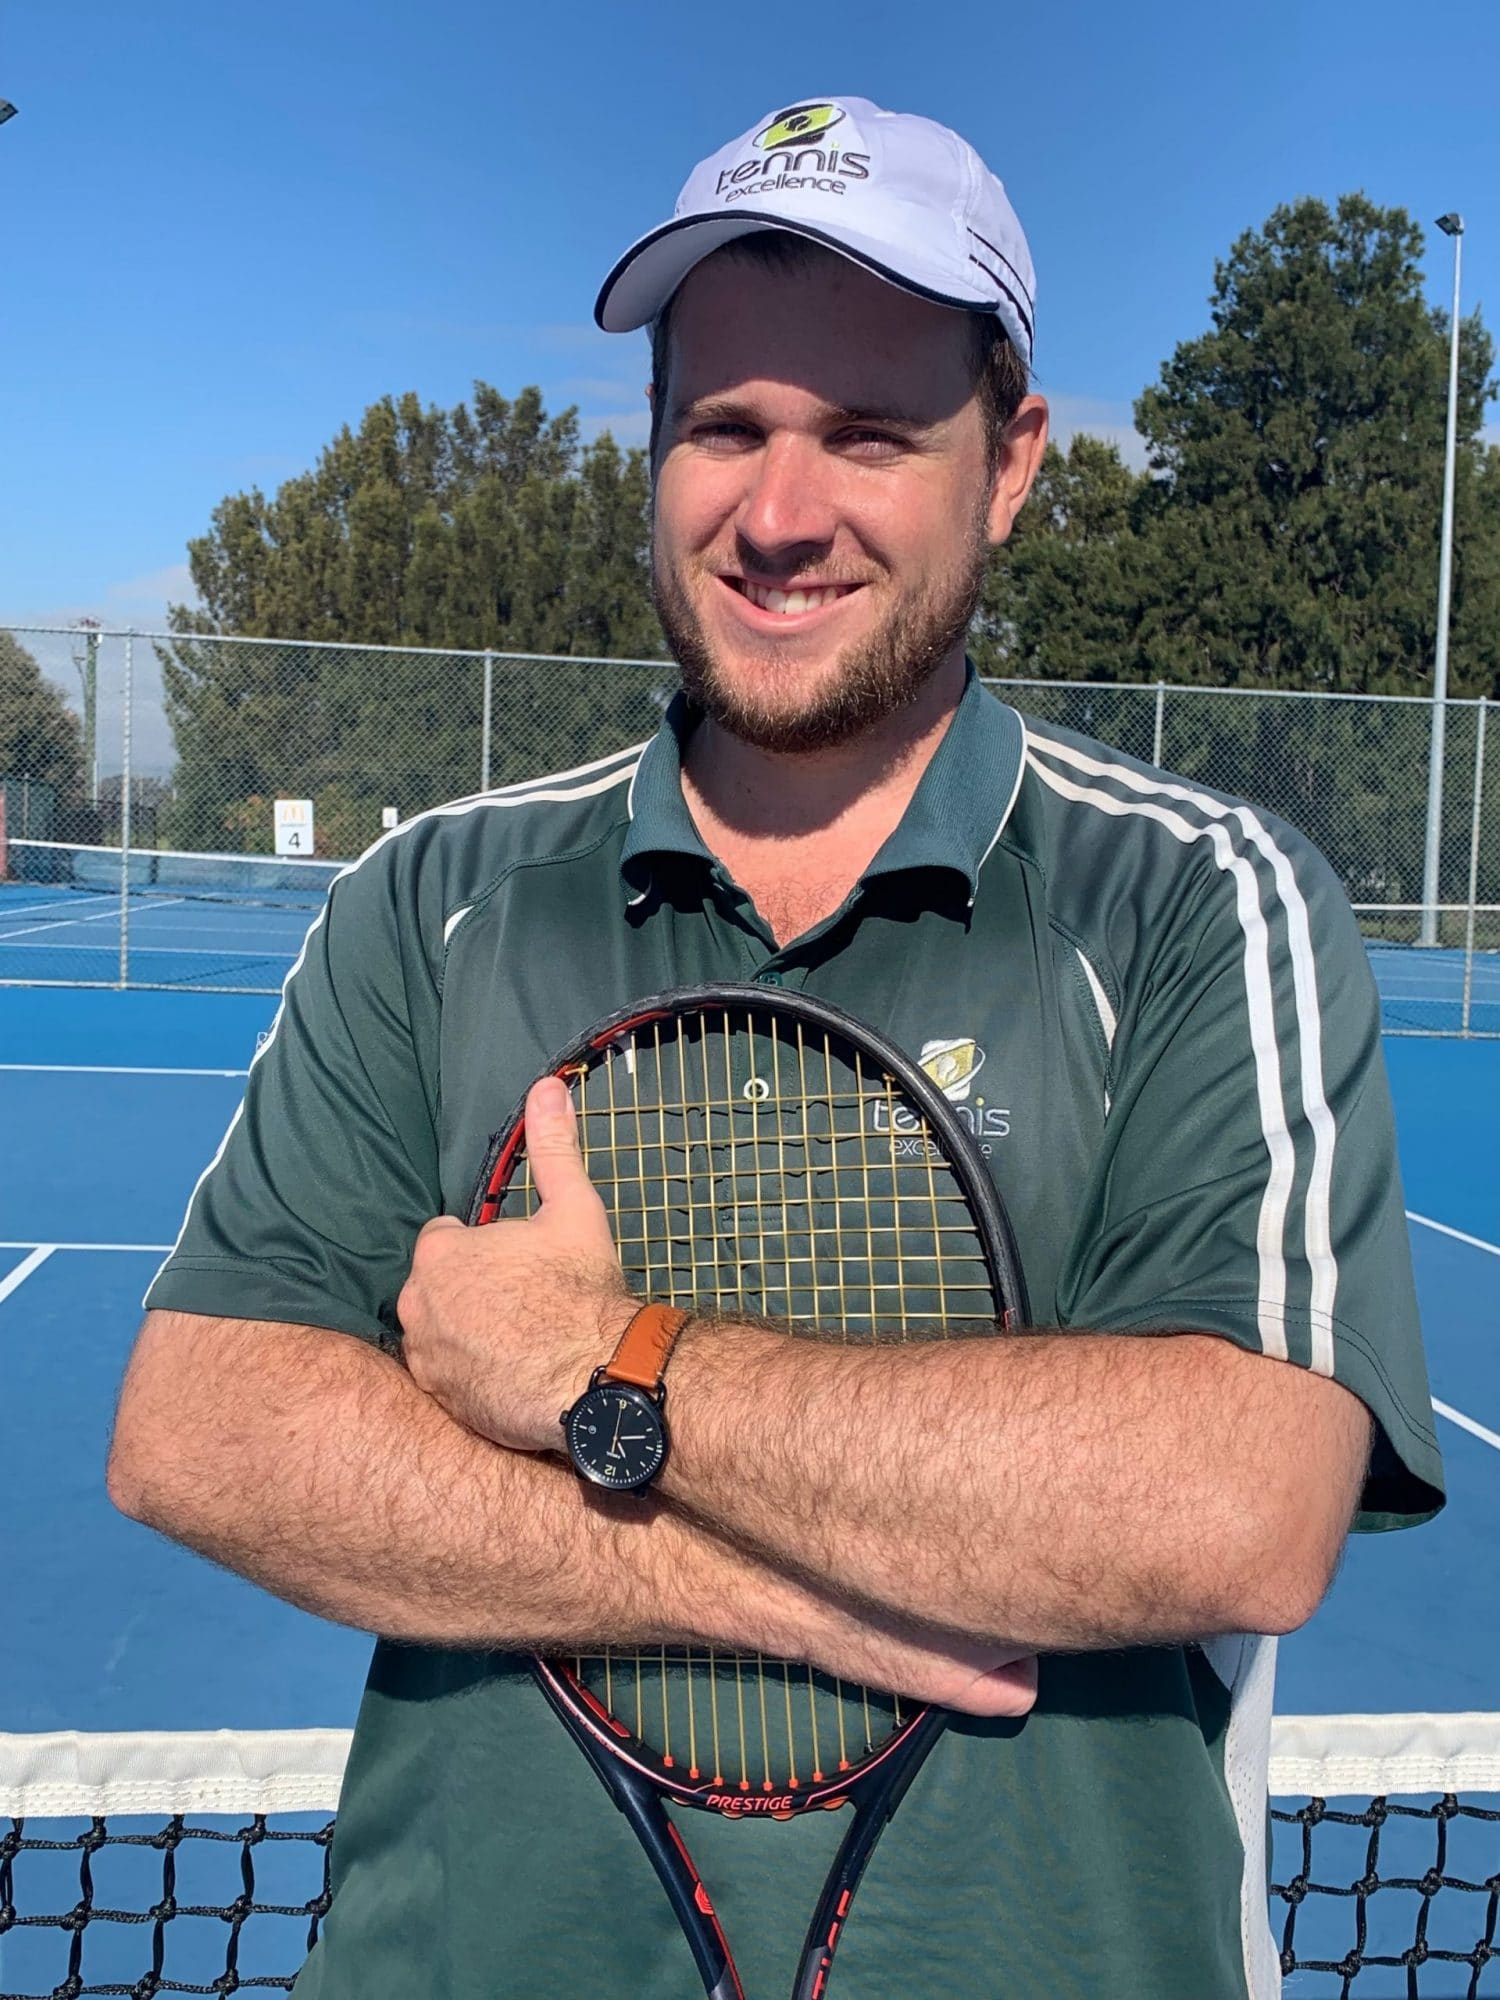 https://www.tennisexcellence.com.au/wp-content/uploads/2020/05/Coach_Josh-Grace-scaled-e1589777037363.jpg